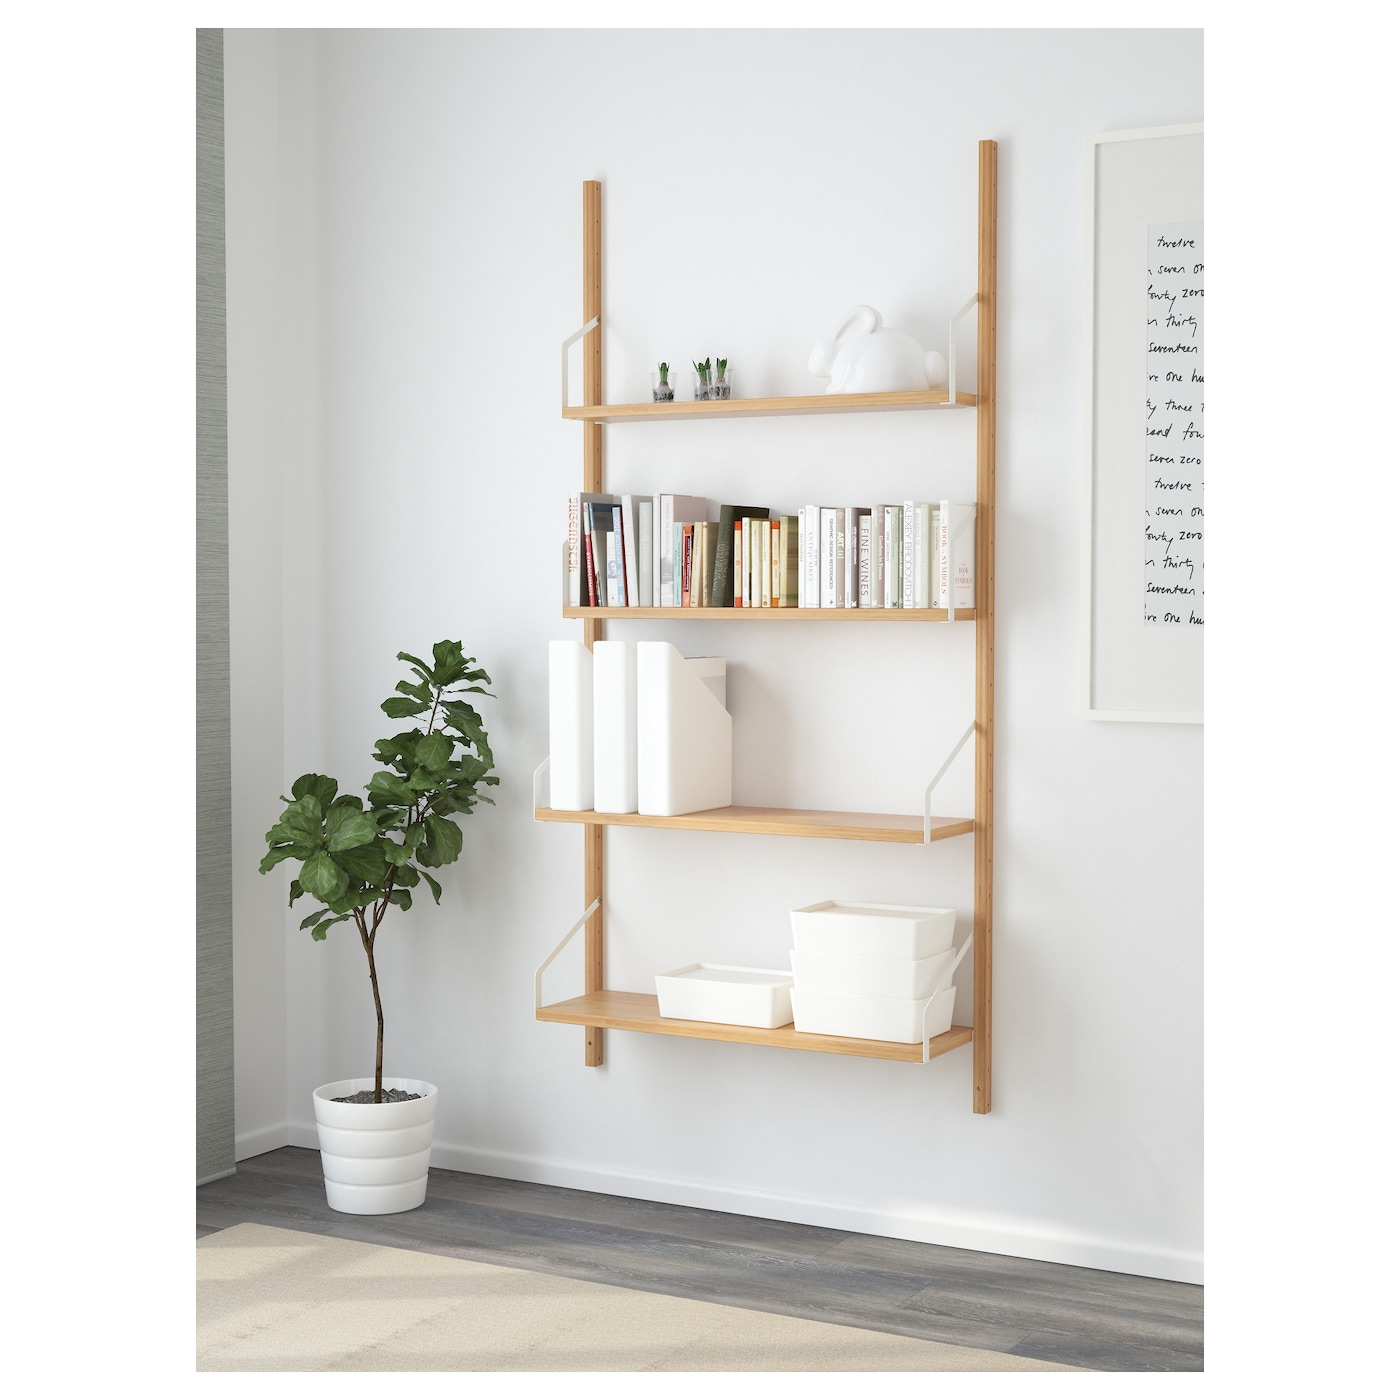 "SVALN""S Wall mounted shelf bination Bamboo 86x25x176 cm IKEA"